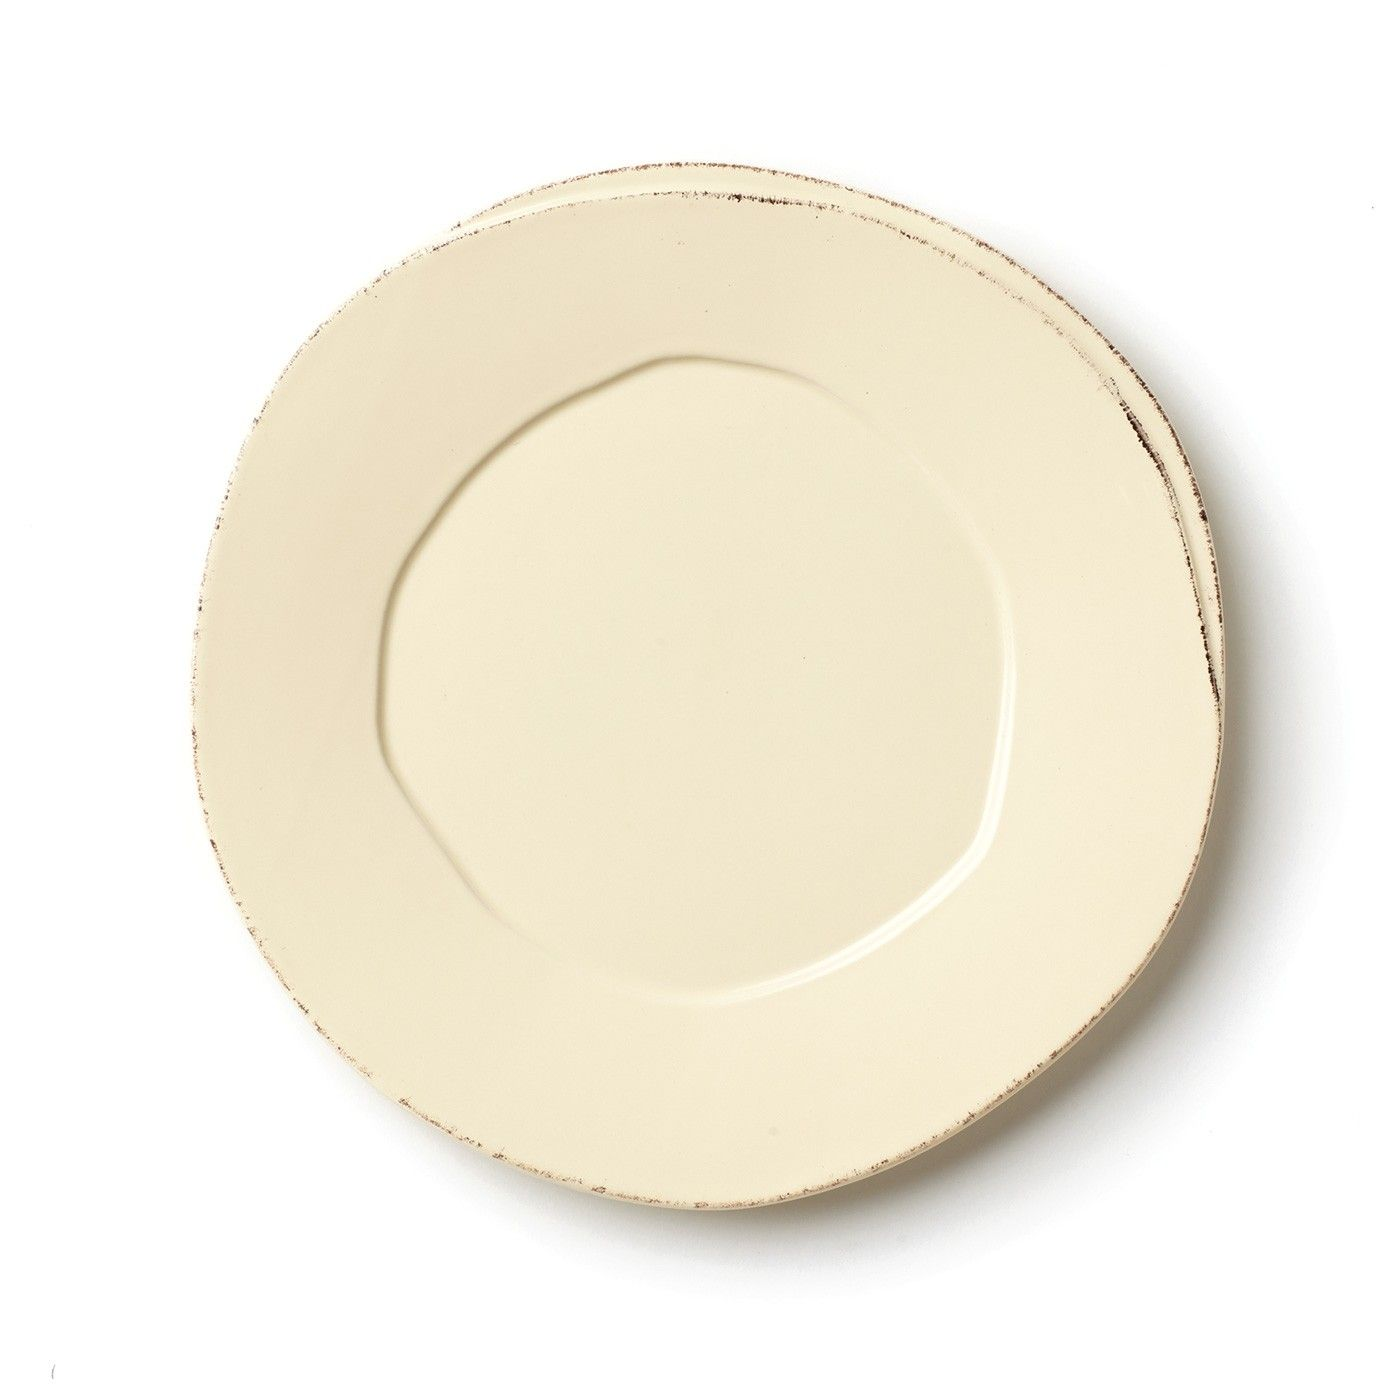 Rustic and chic the Lastra Cream European Dinner Plate is the slightly smaller of the  sc 1 st  Pinterest & Rustic and chic the Lastra Cream European Dinner Plate is the ...